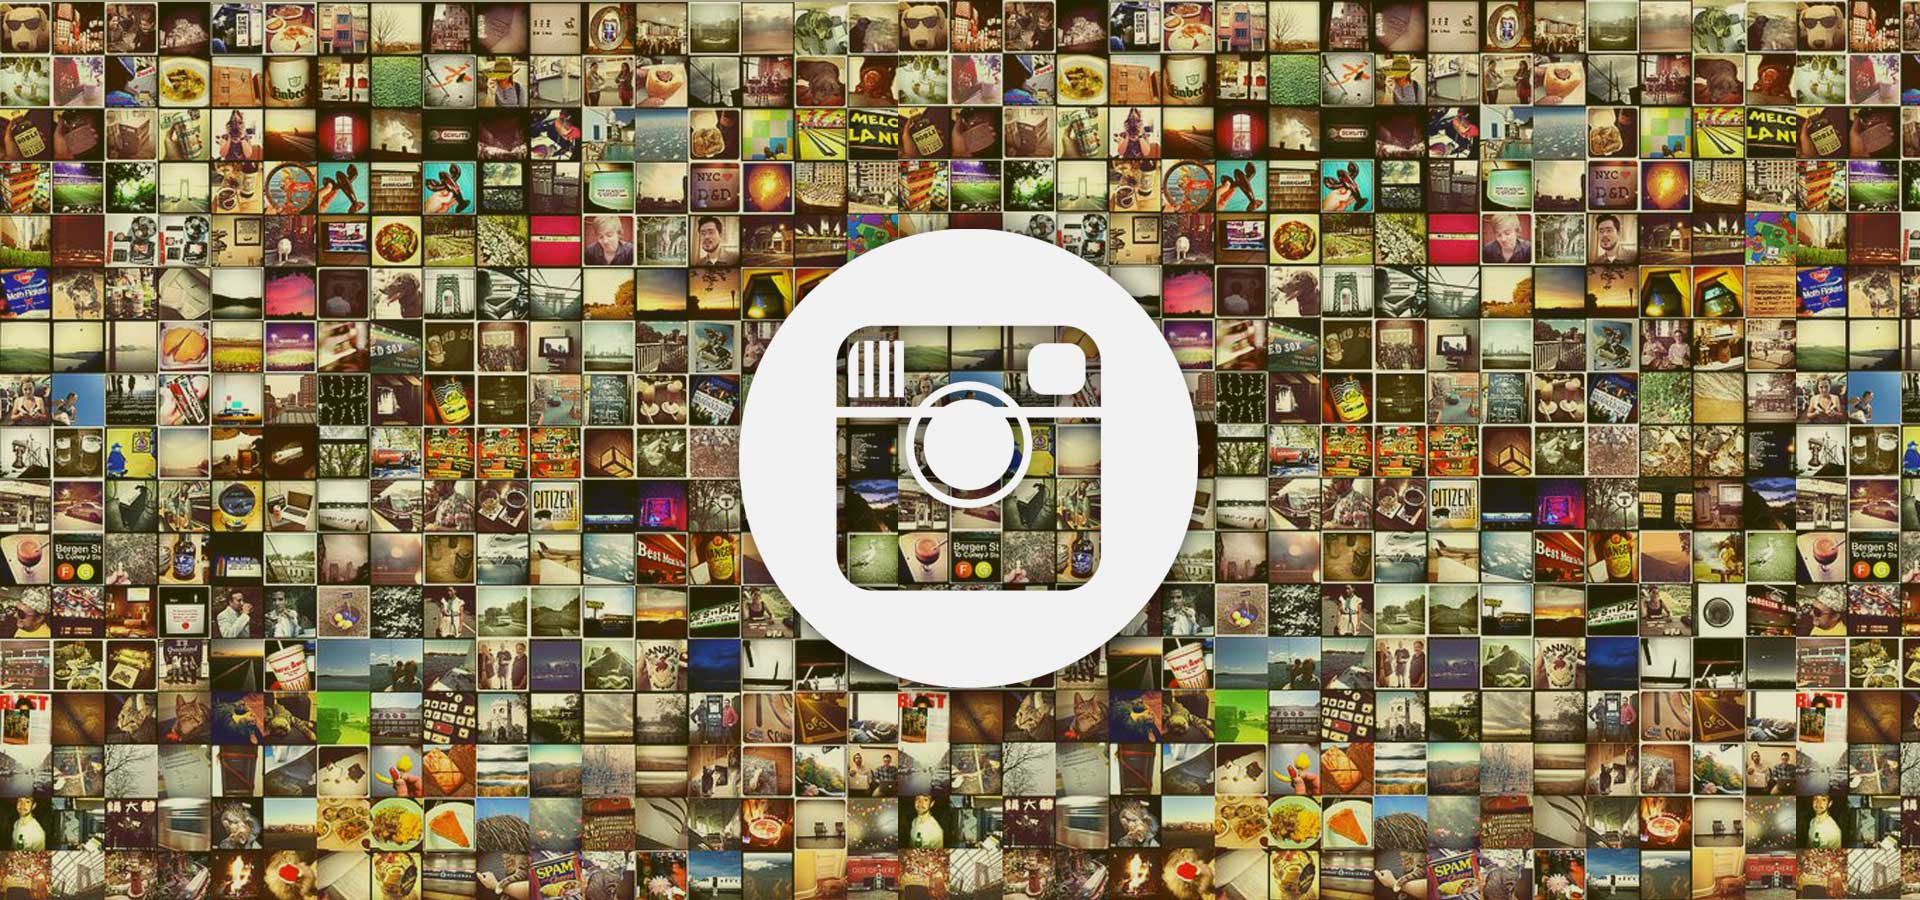 how to add people to instagram